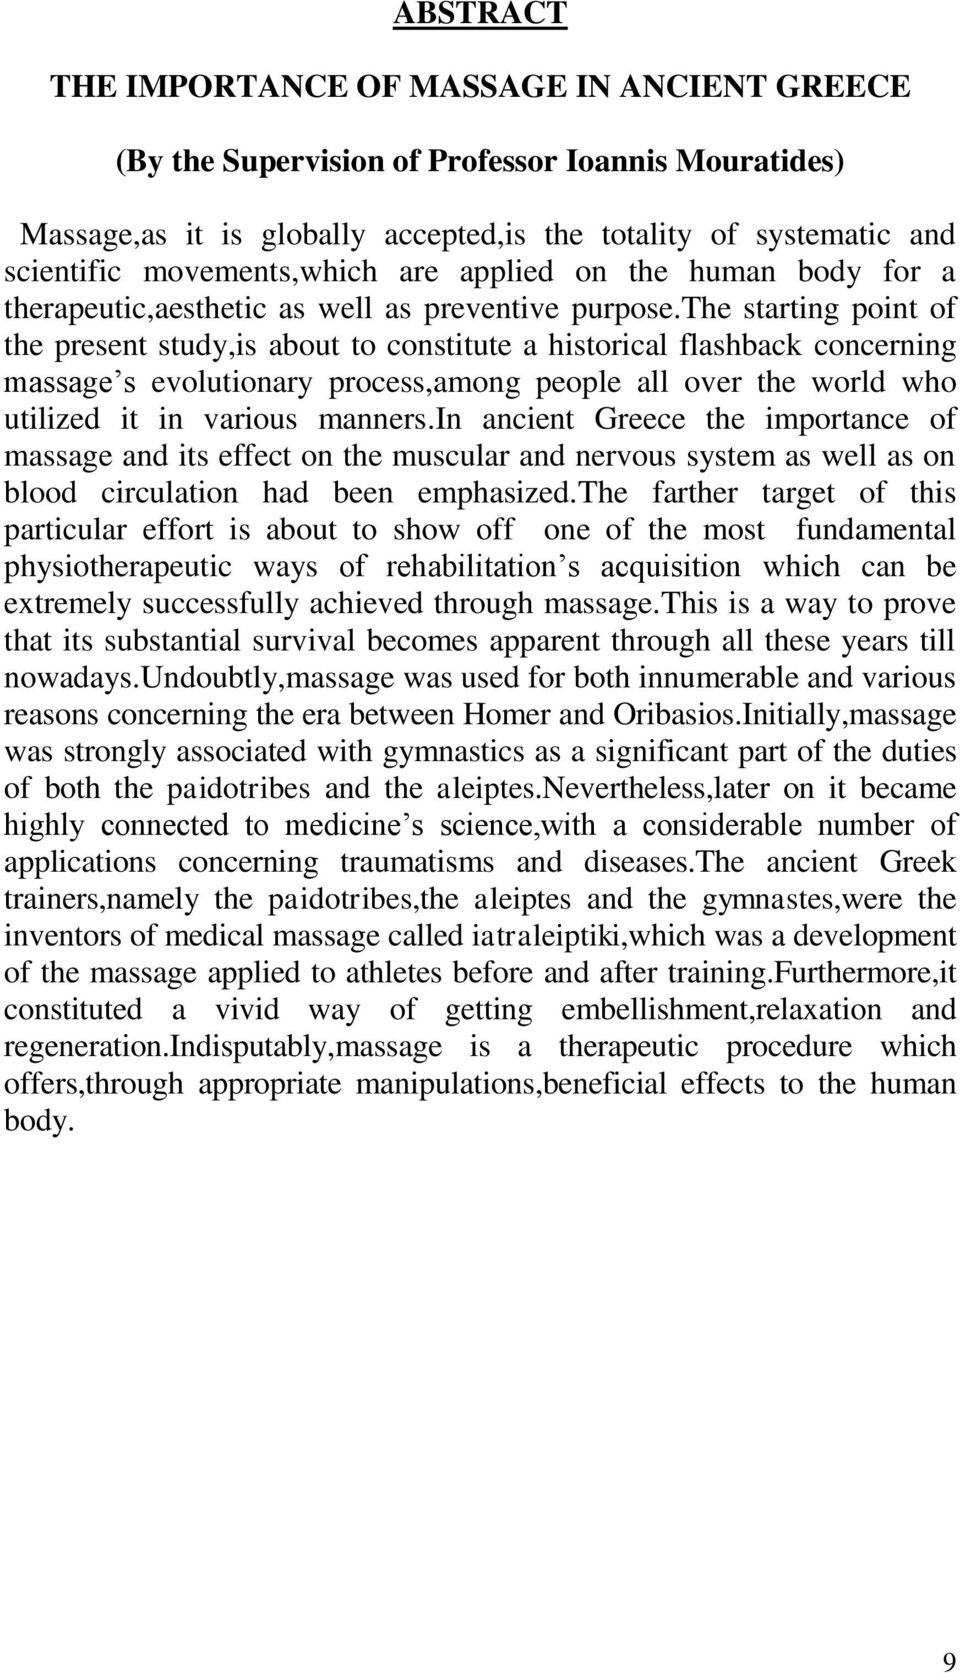 the starting point of the present study,is about to constitute a historical flashback concerning massage s evolutionary process,among people all over the world who utilized it in various manners.